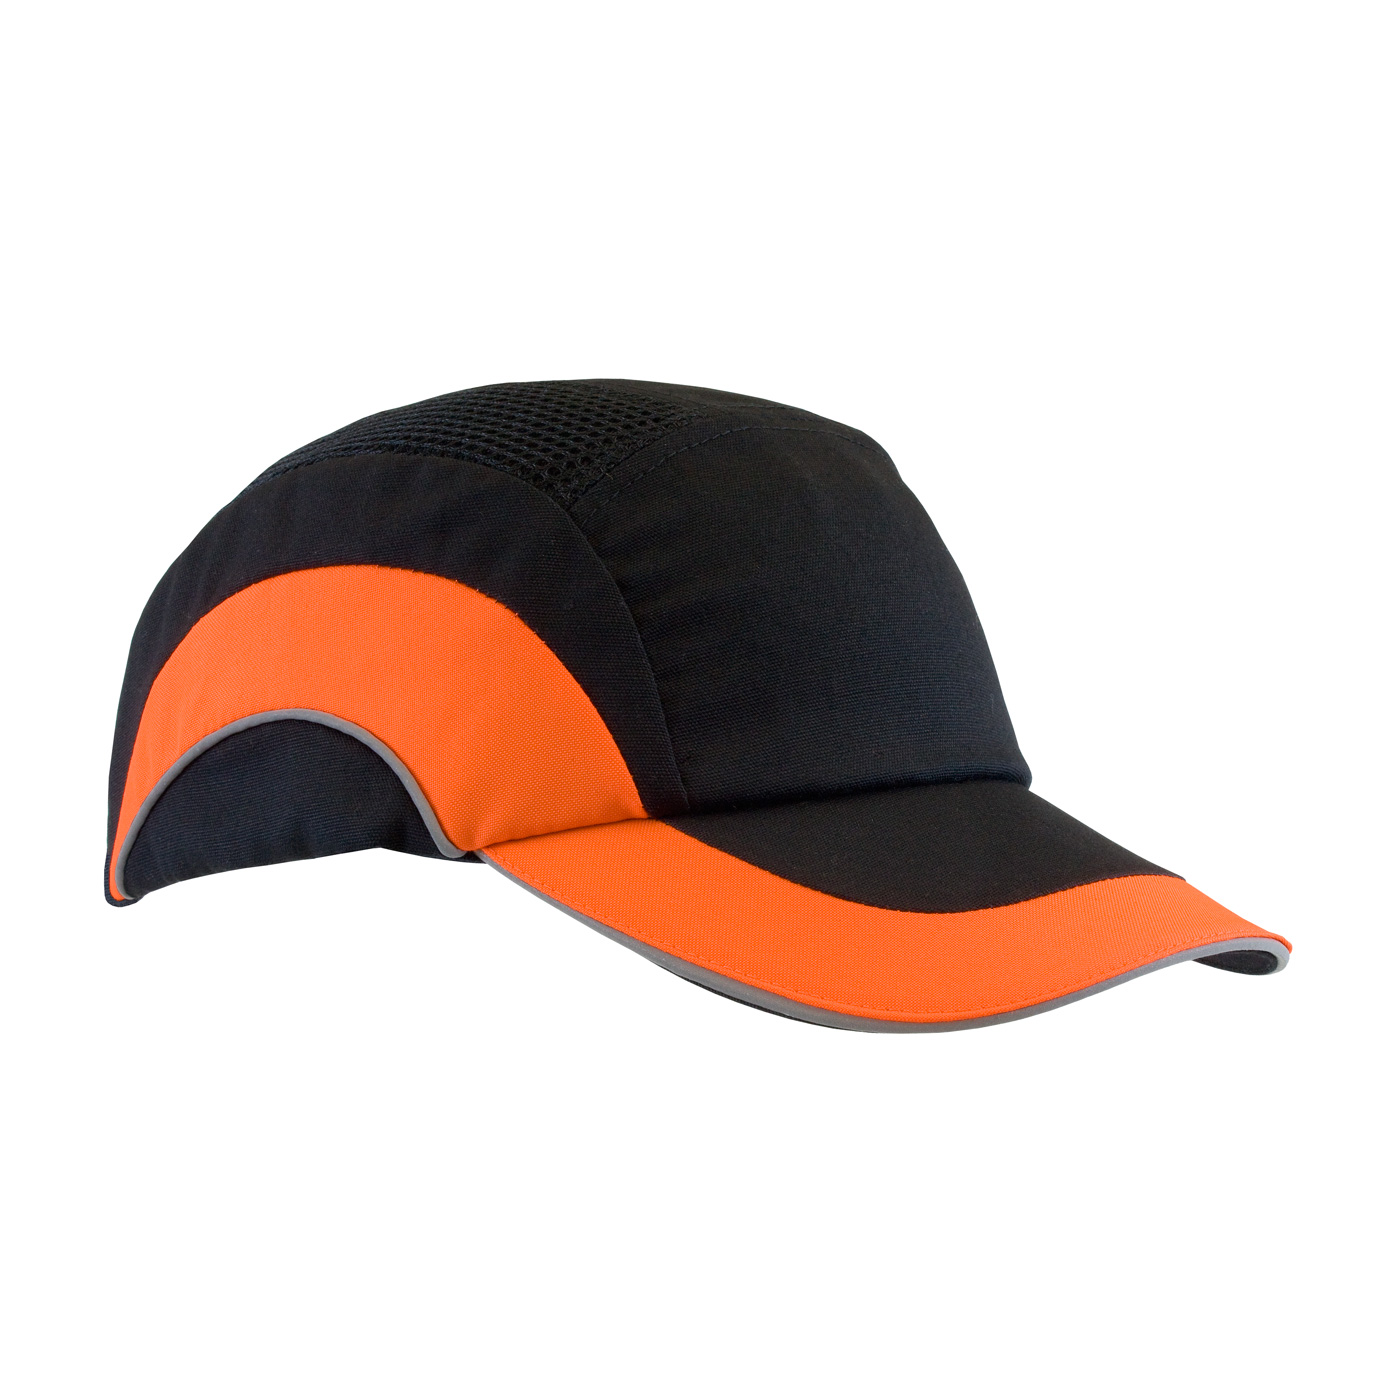 a17b4199ffe30d HardCap A1+™ Baseball Style Bump Cap with HDPE Protective Liner and  Adjustable Back. Black